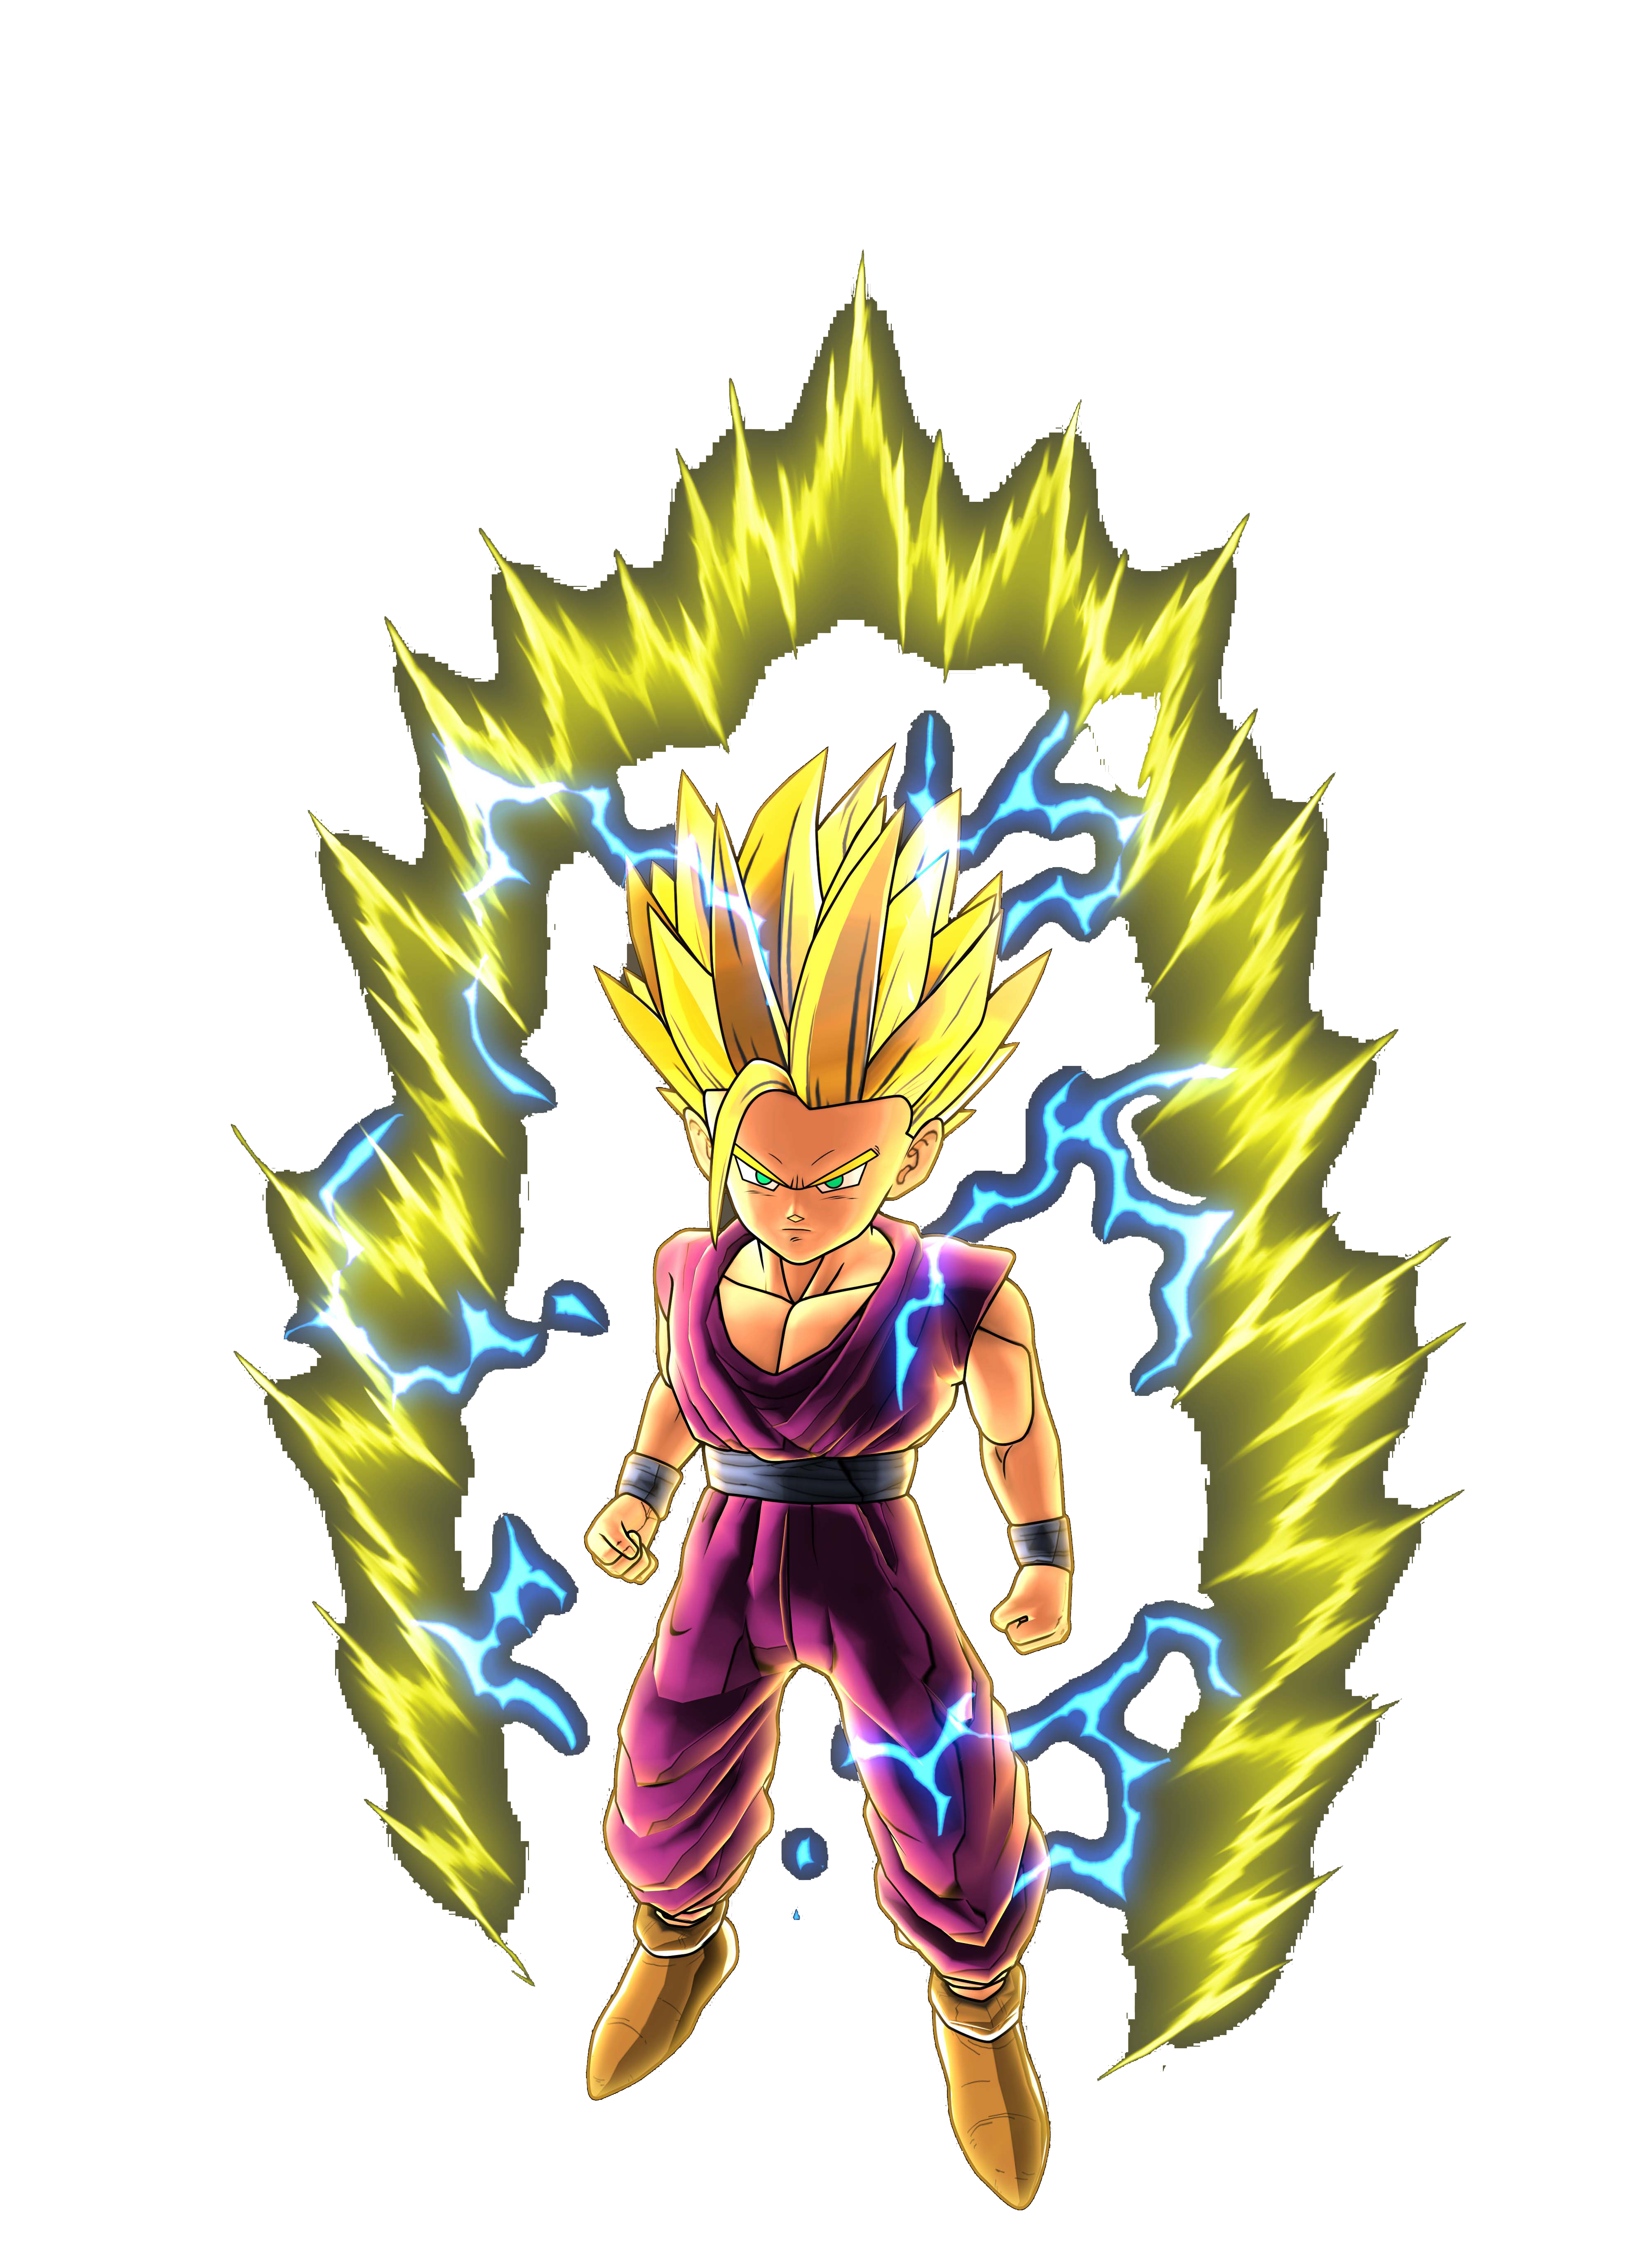 Teen Gohan Super Saiyan 2 Render (Dragon Ball Z Battle of Z).png